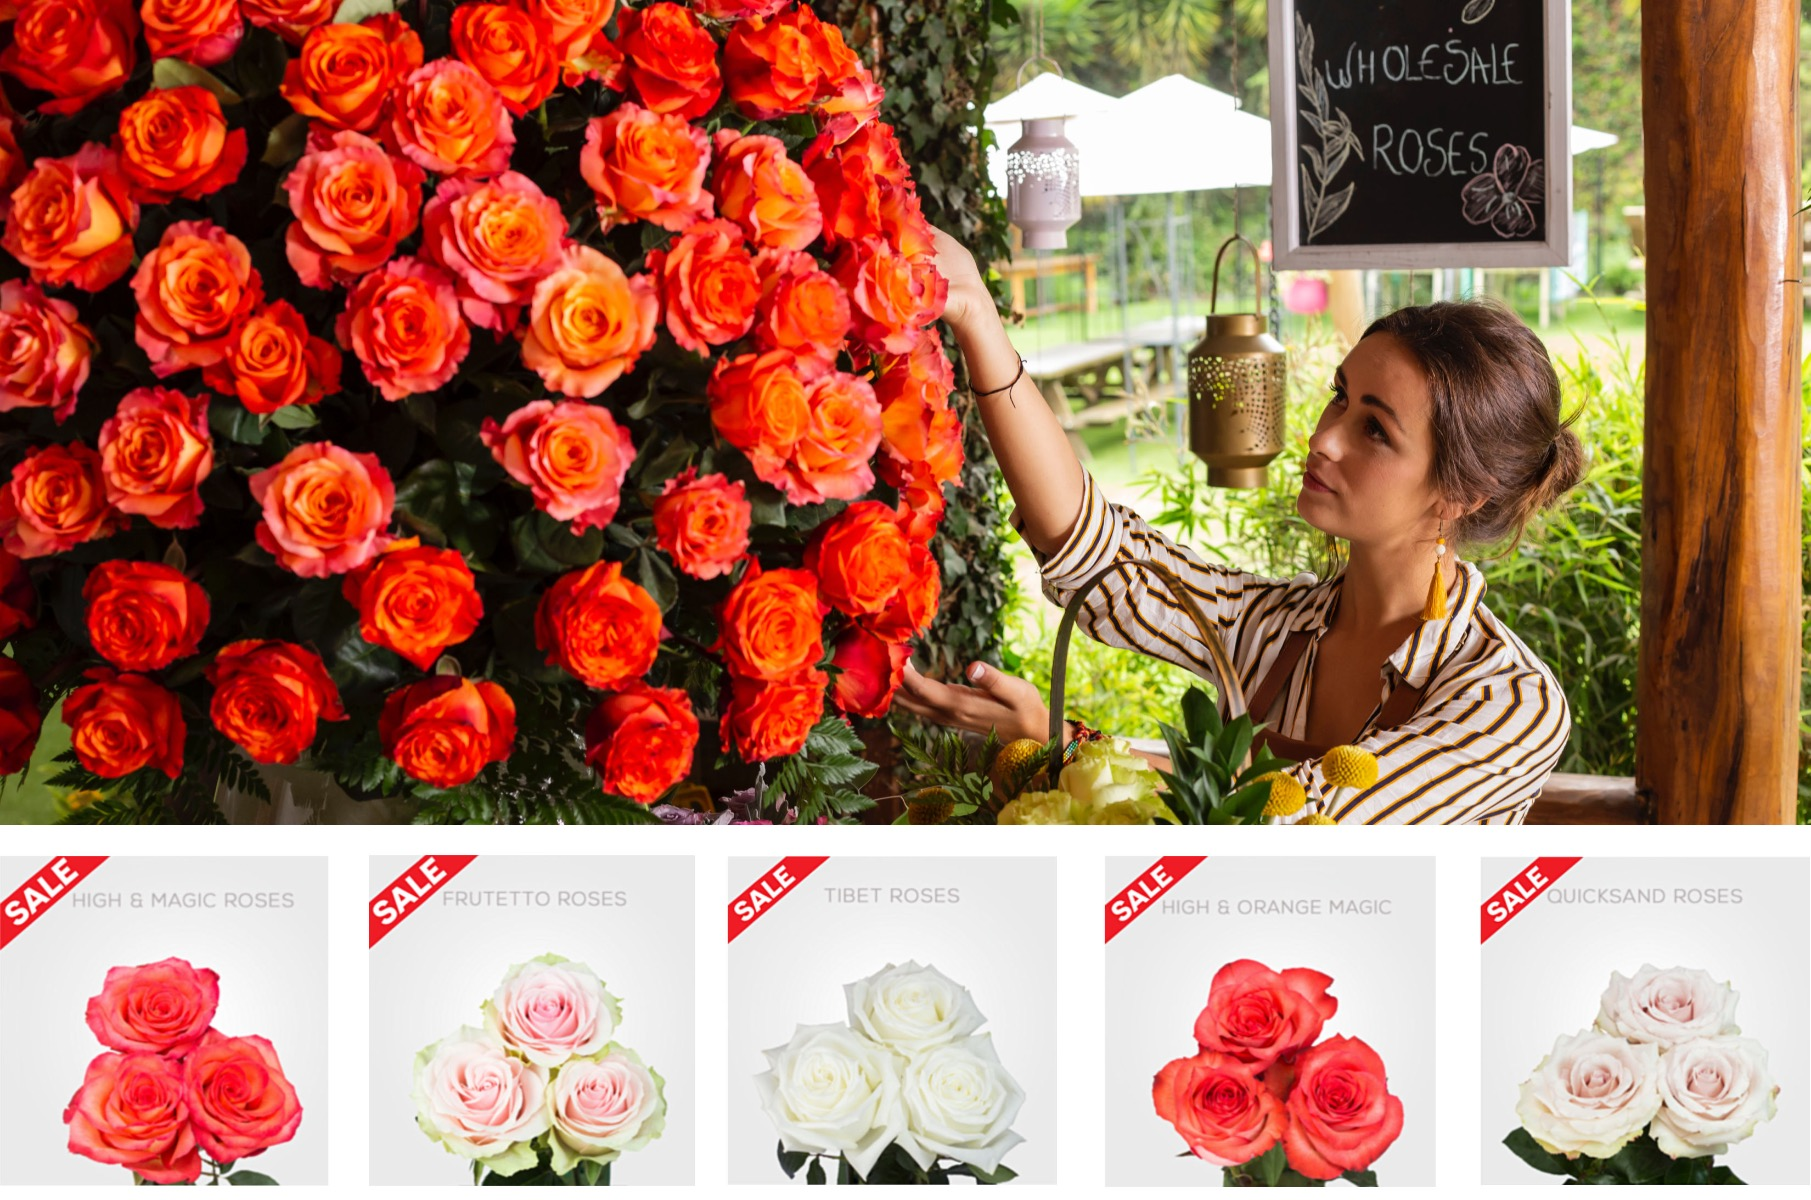 25% OFF WHOLESALE ROSES